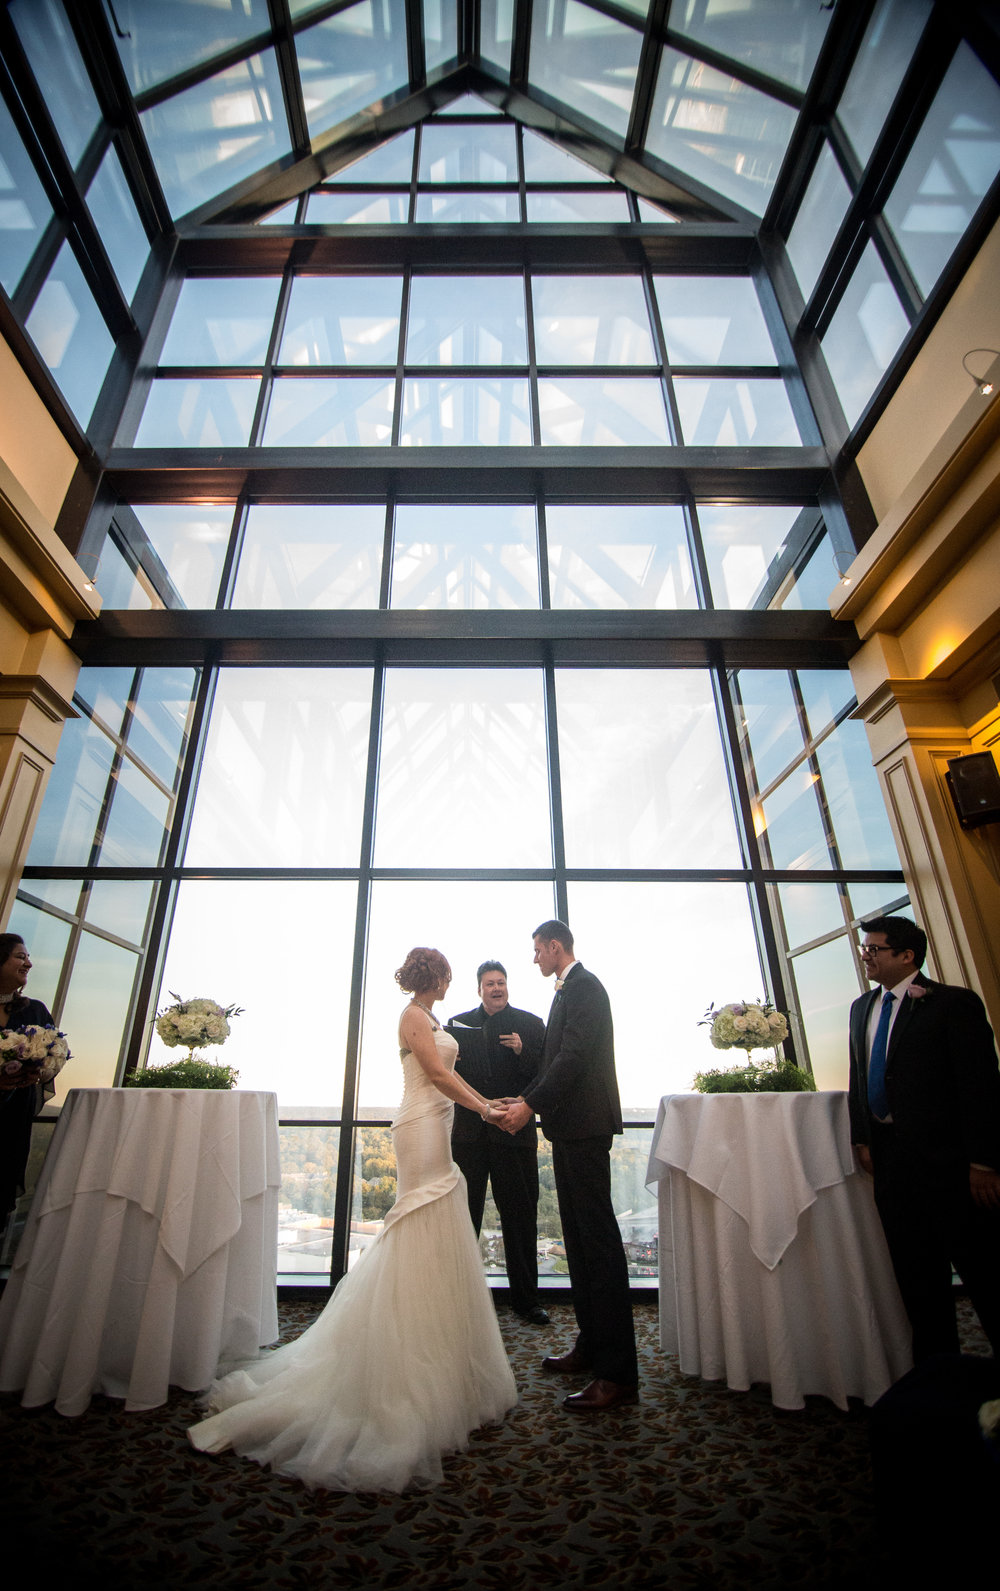 Wedding at City Club of Buckhead by the Atlanta Wedding photographers at www.AtlantaArtisticWeddings.com